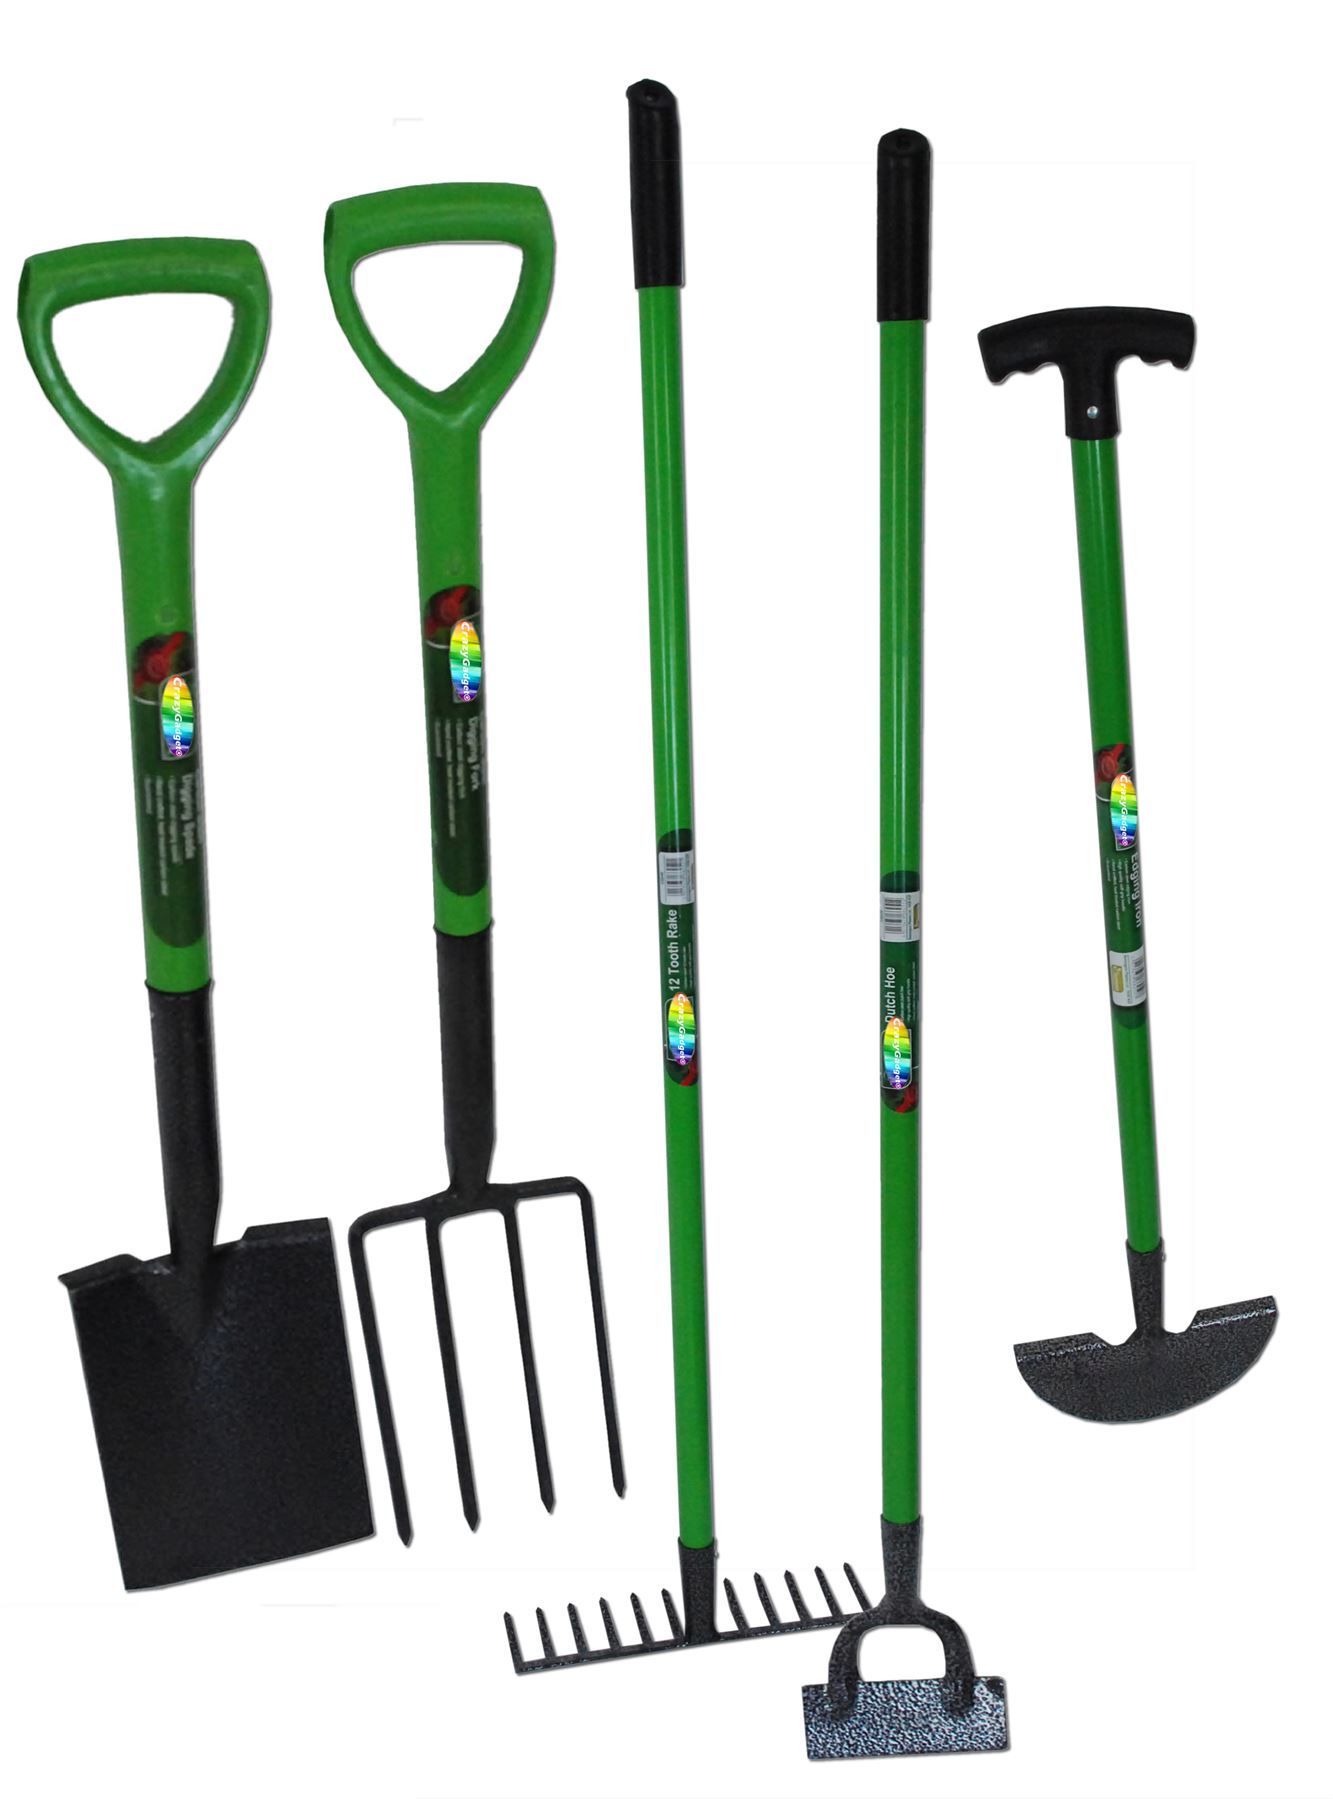 Garden Tools Kingfisher 5pcs Gardening Tool Set Fork Spade Hoe Edging